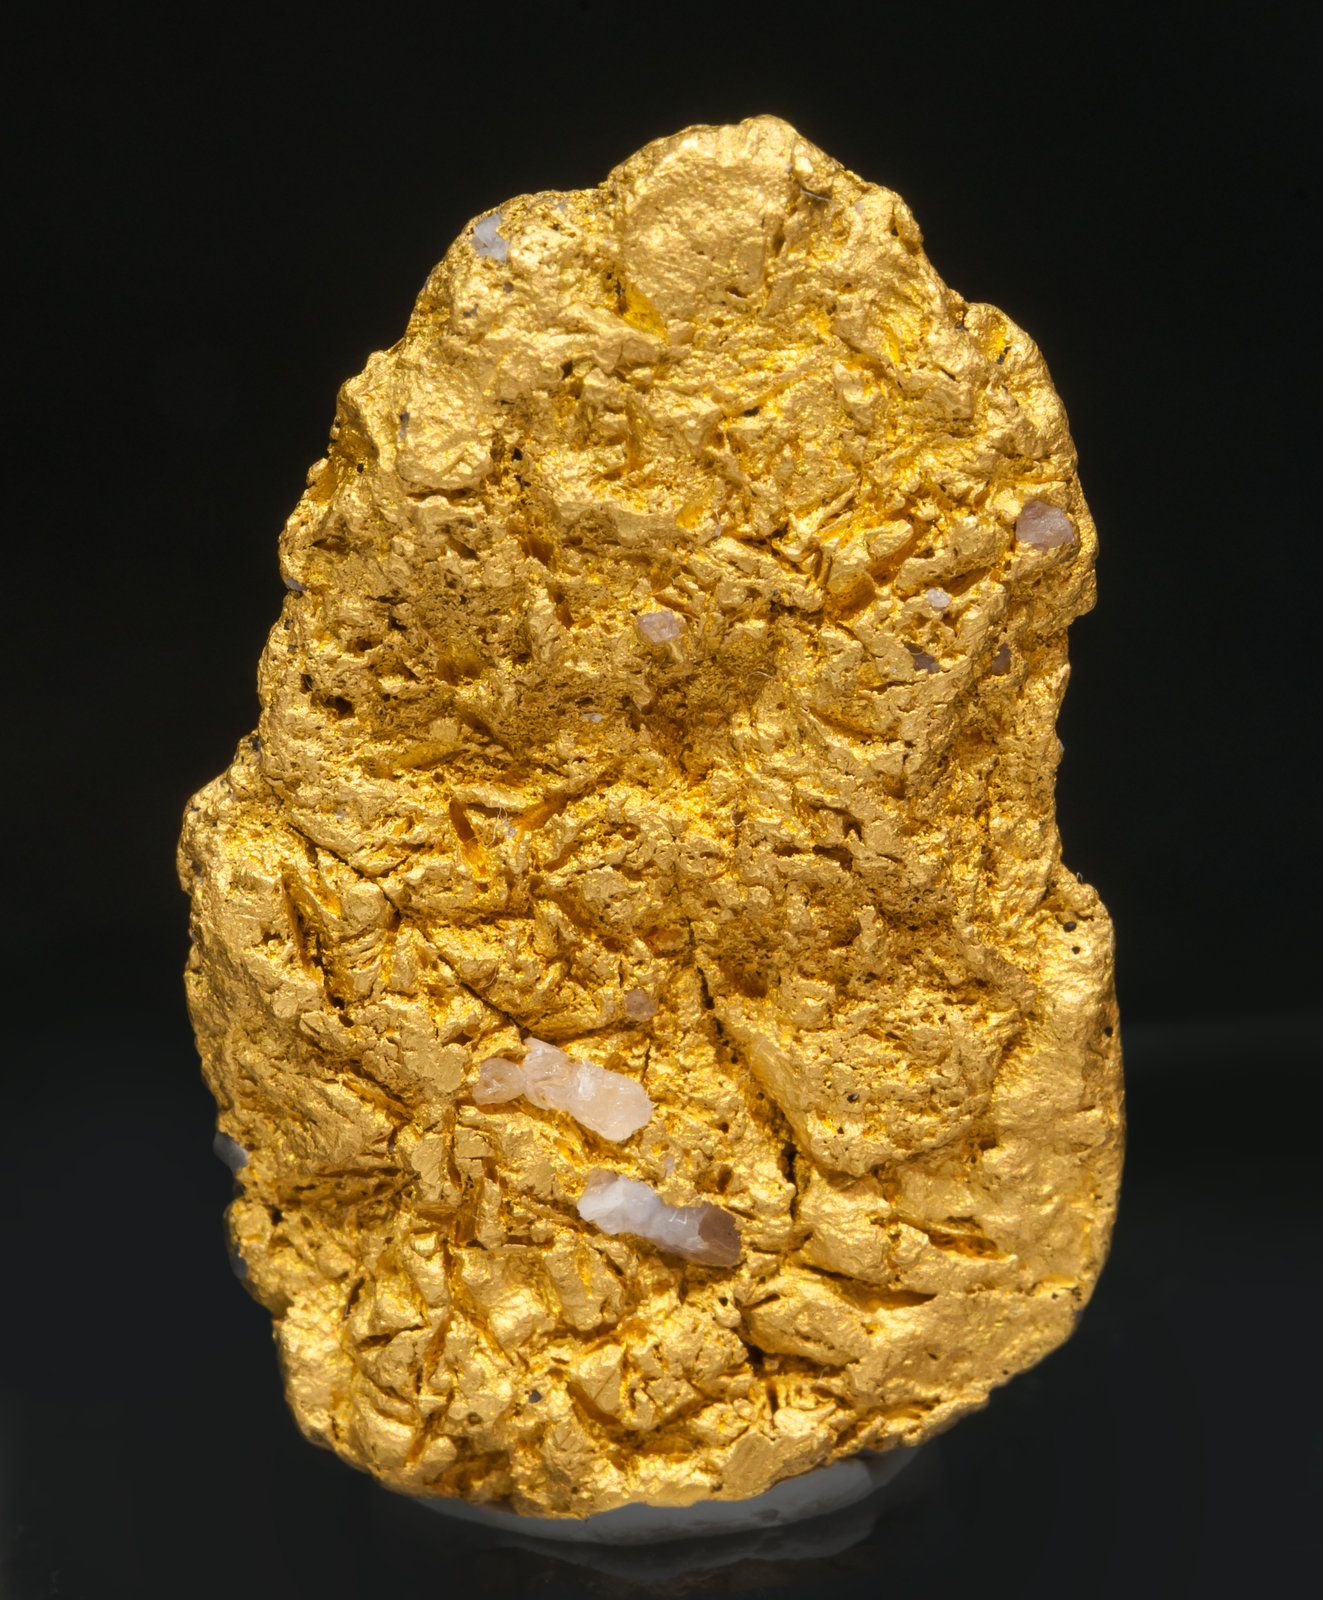 specimens/s_imagesAH4/Gold-NA77AH4f.jpg